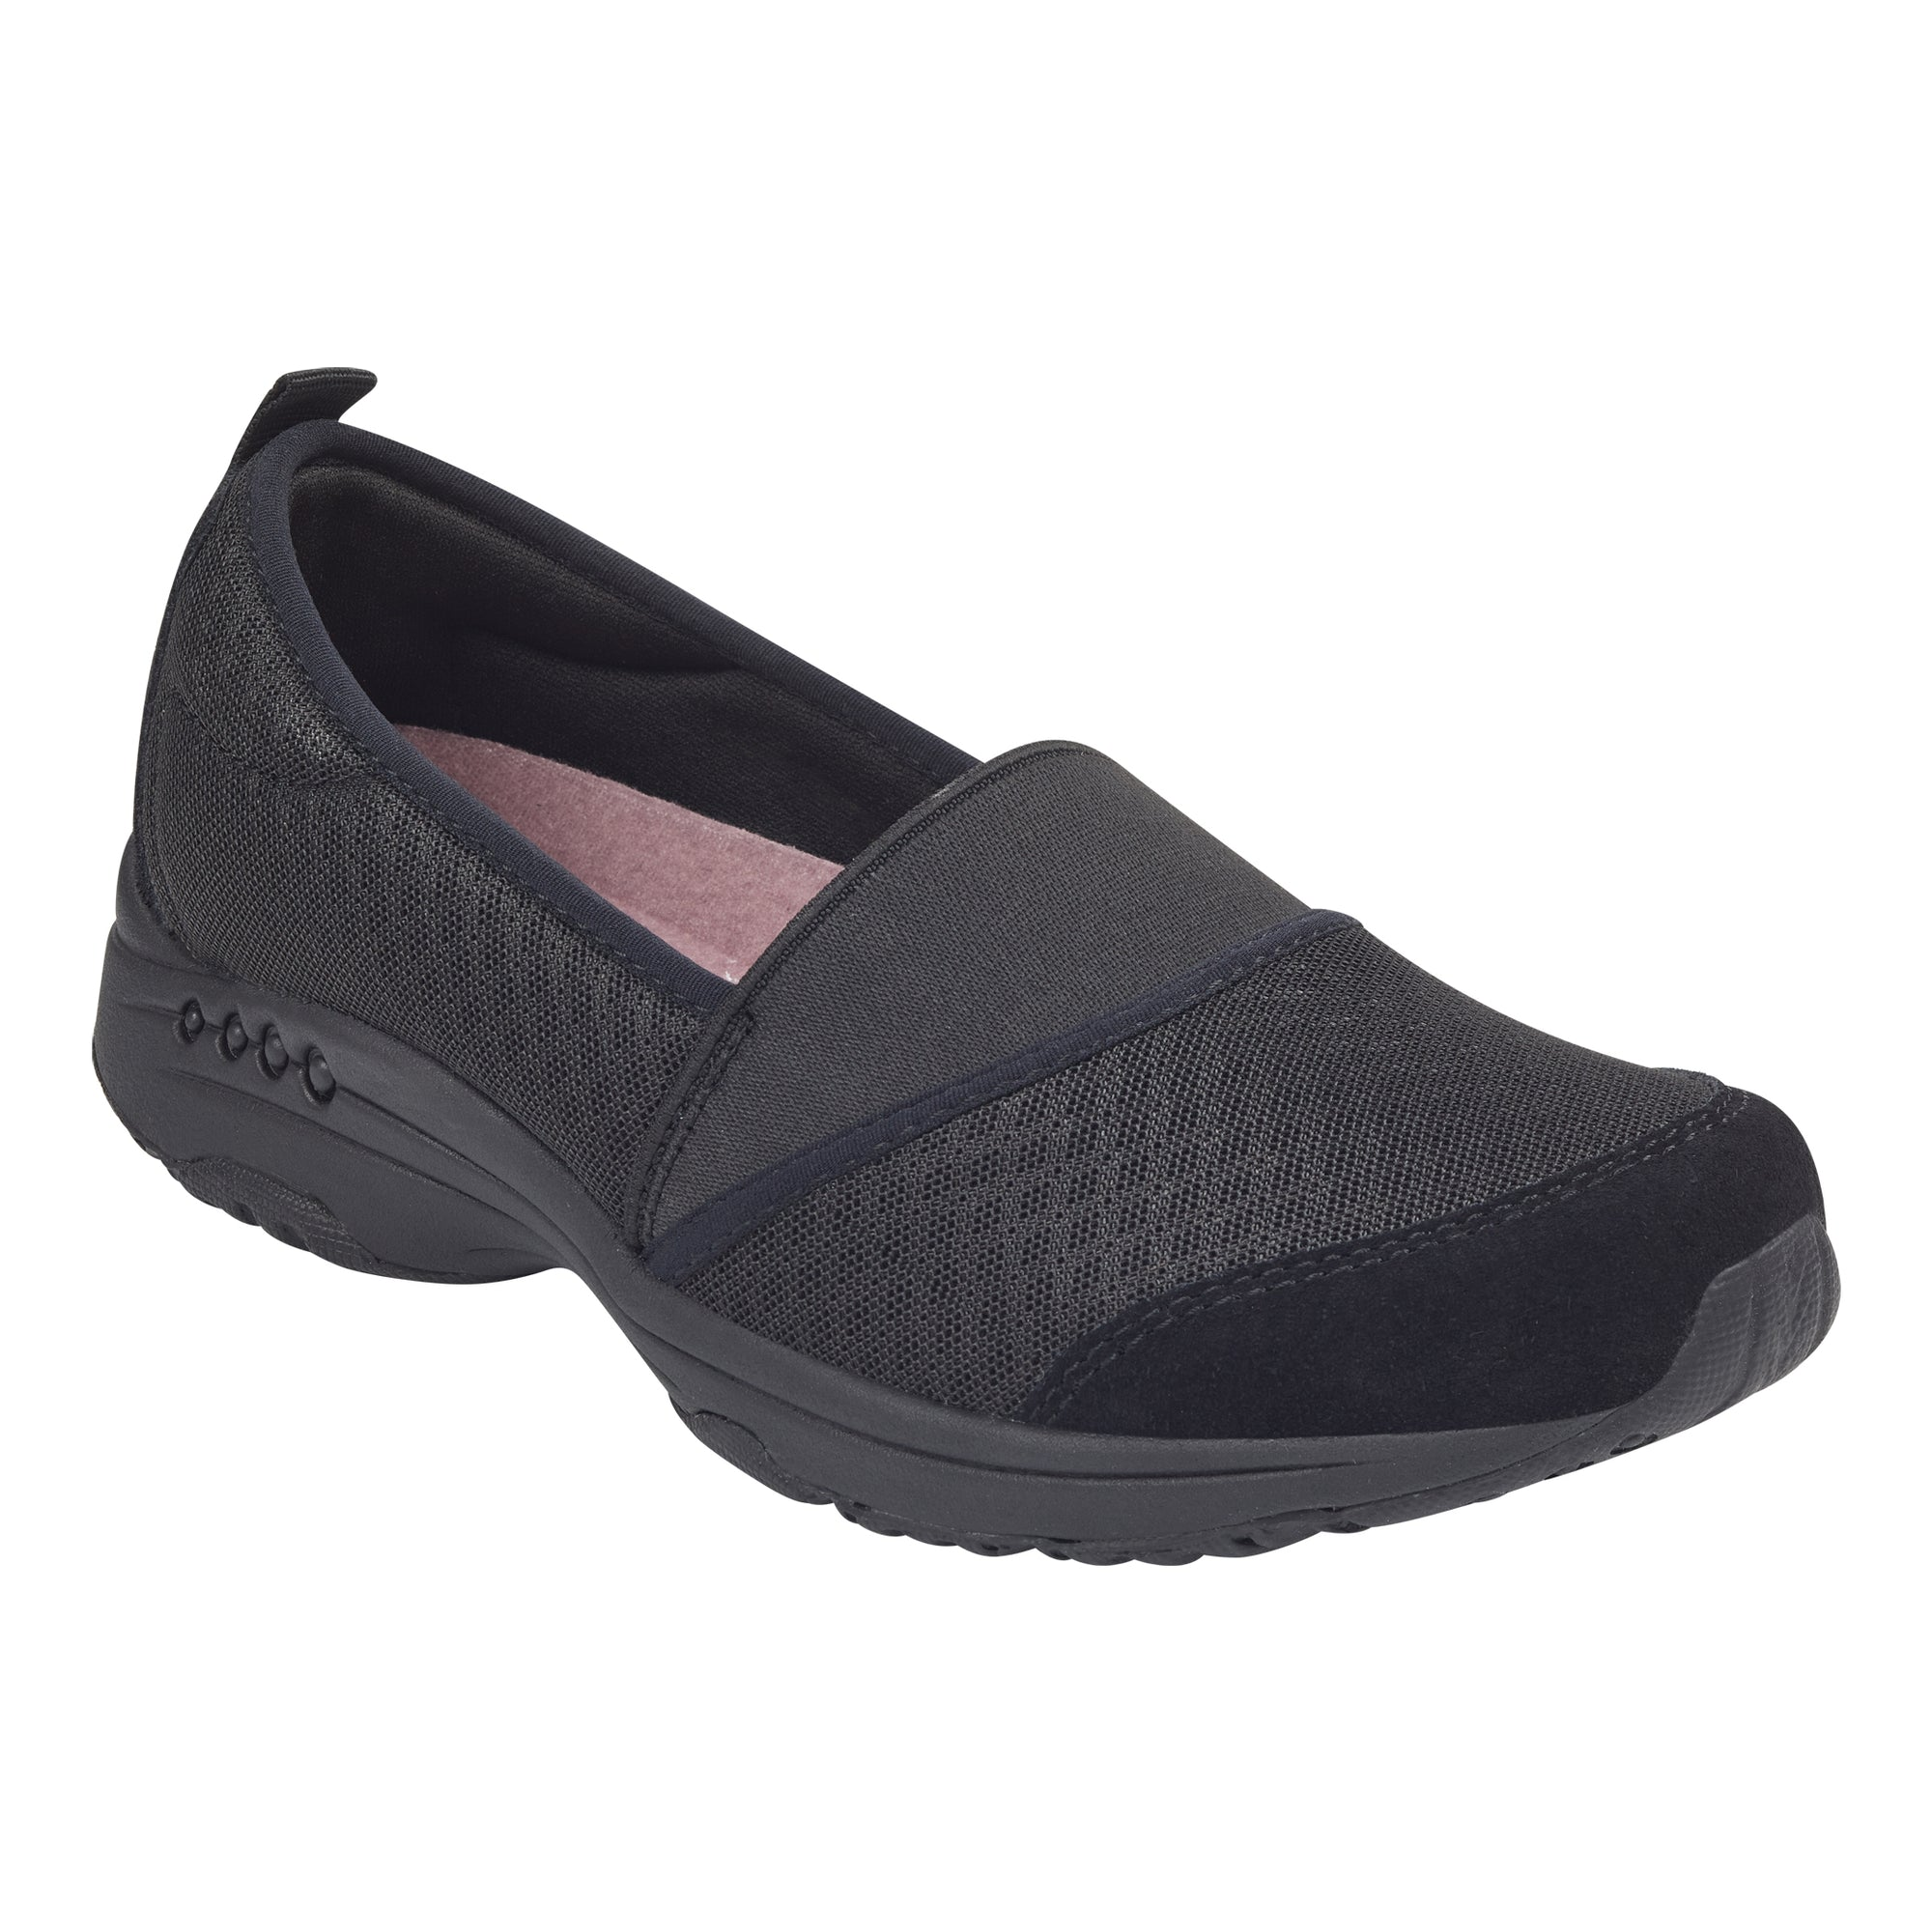 Twist Slip-On Sneakers